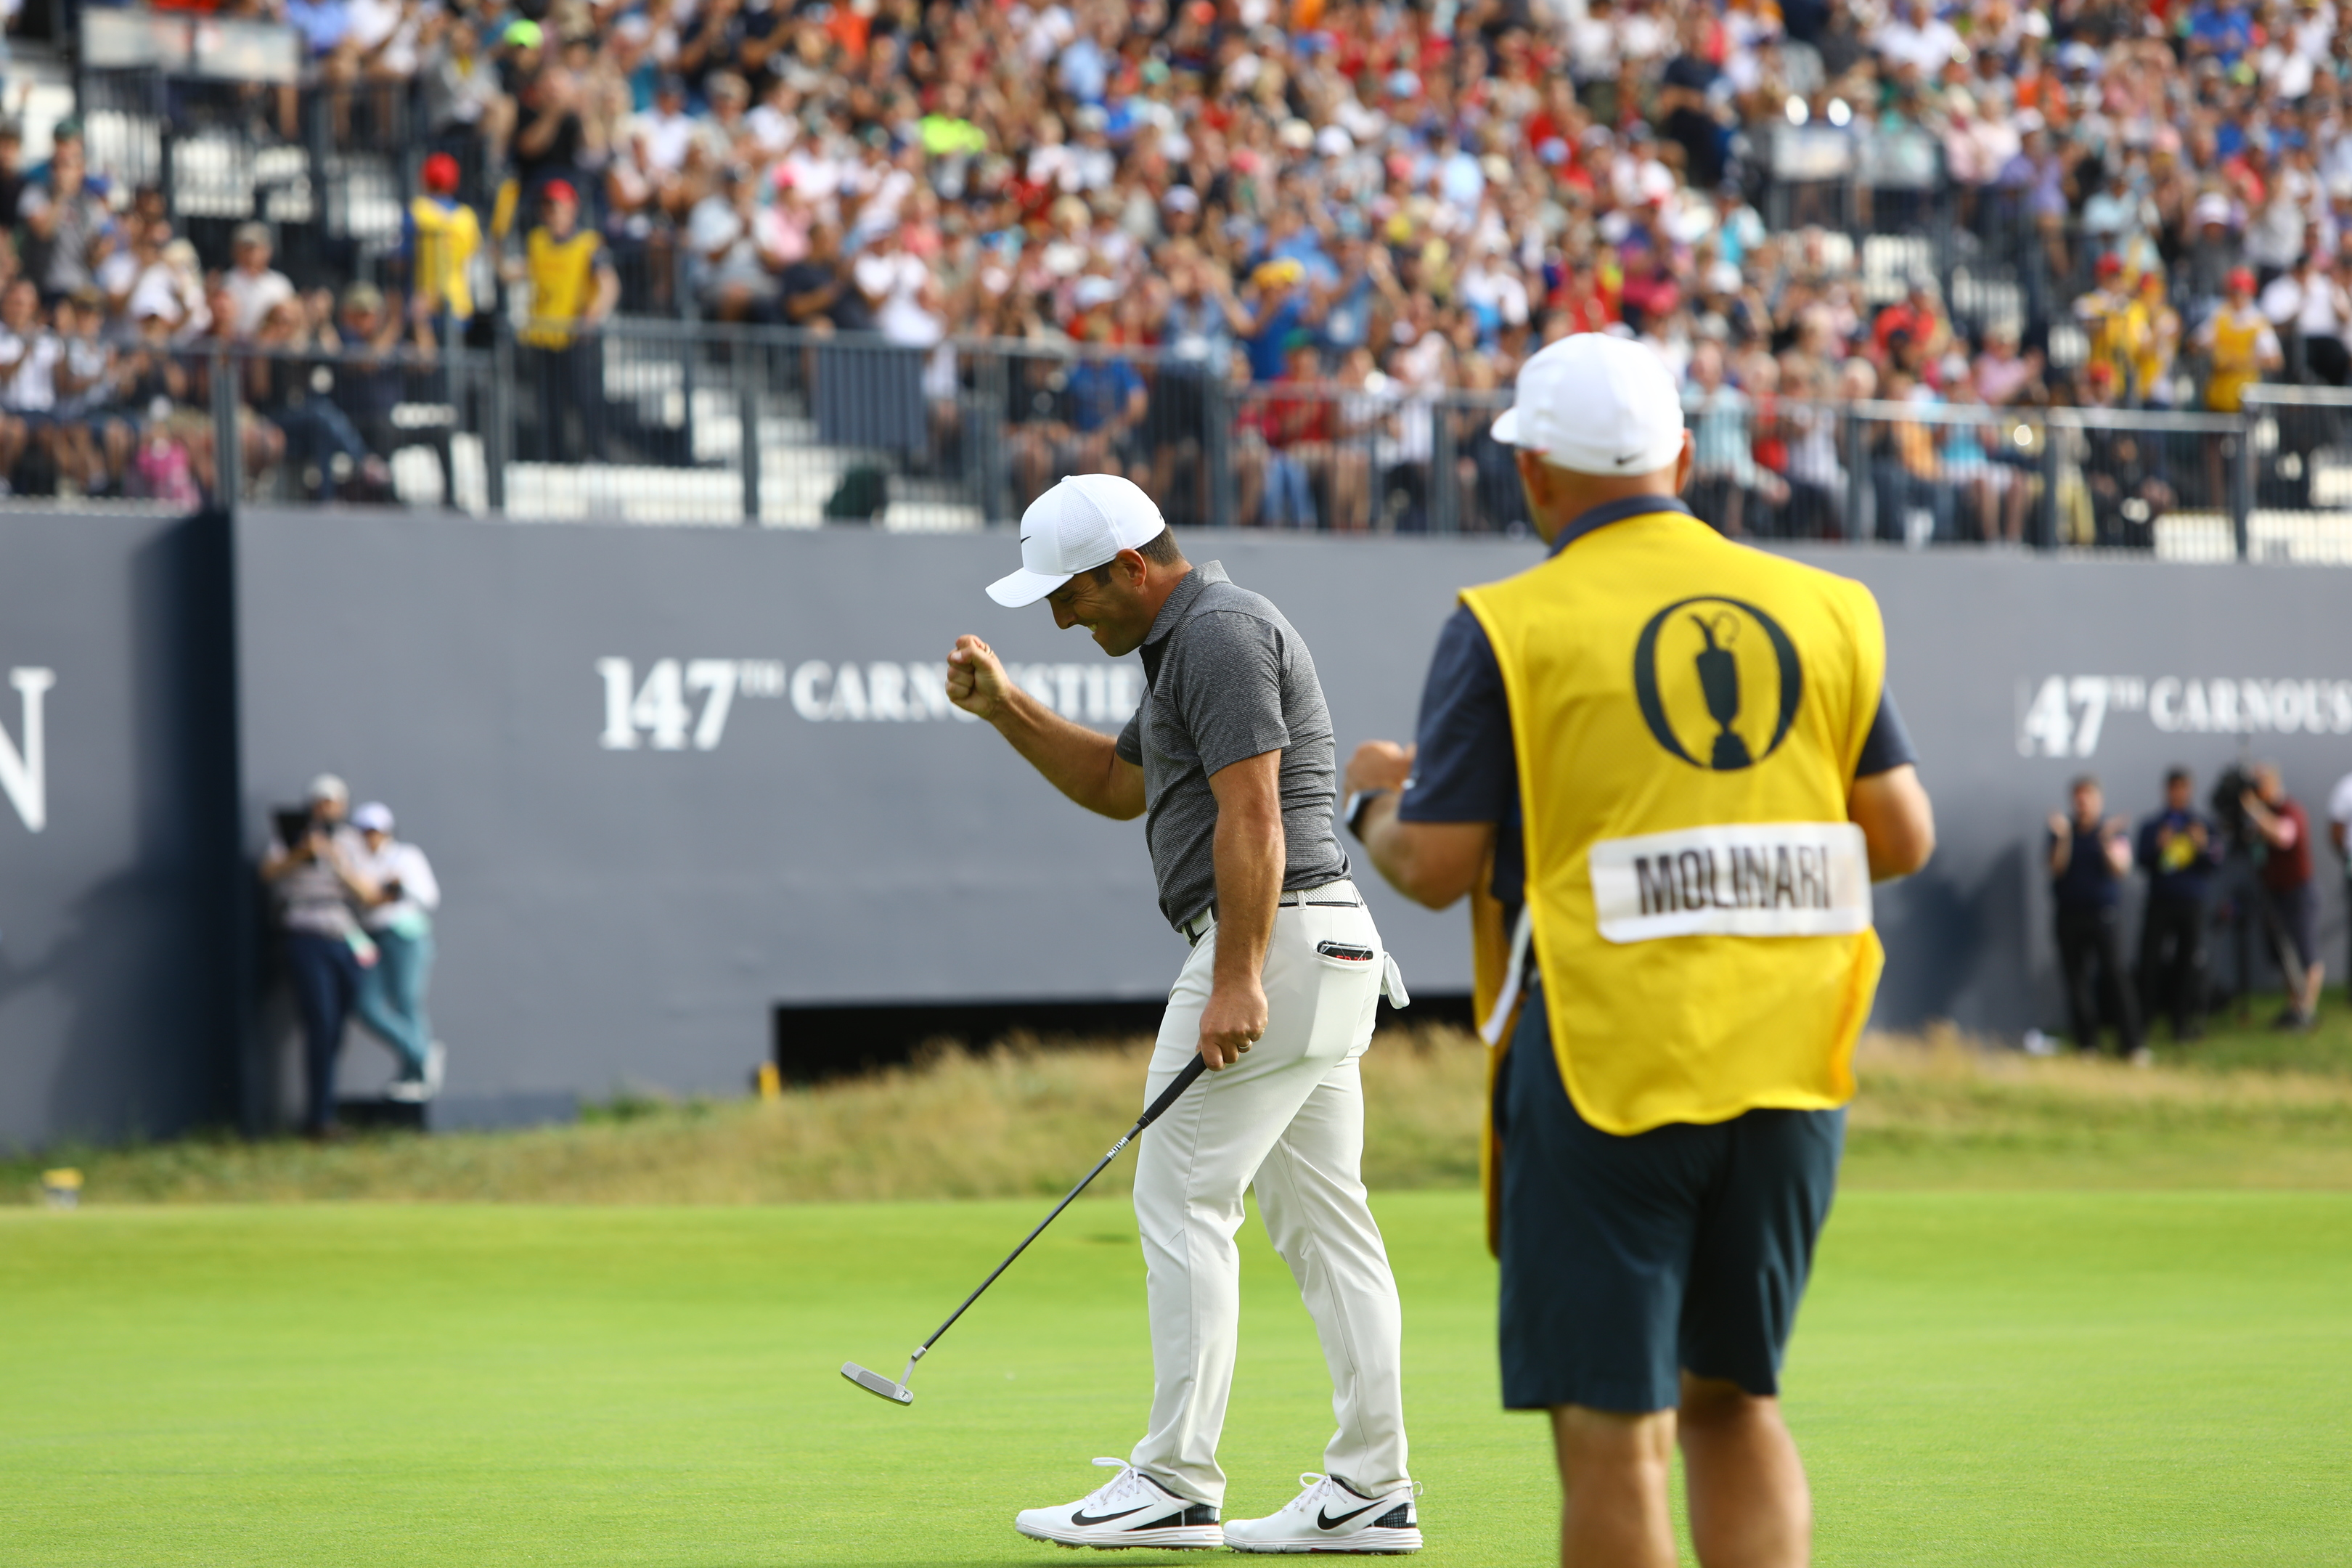 Francesco Molinari sinks his birdie putt on the 18th, to win the Open Championship at Carnoustie.